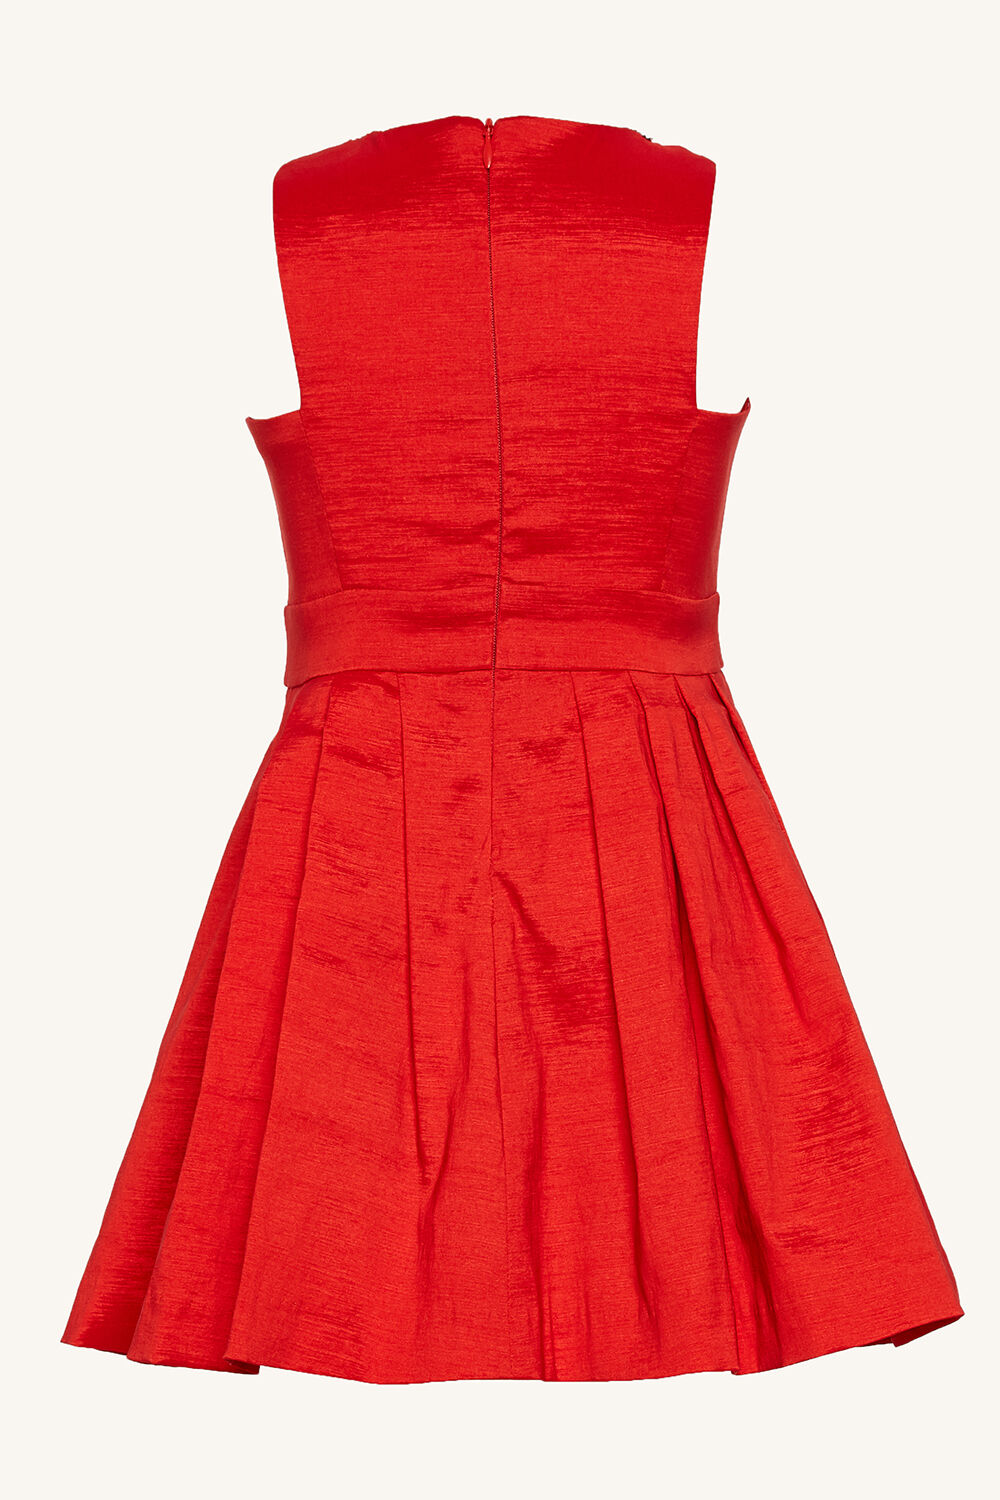 NELLY JEWEL DRESS in colour HIGH RISK RED